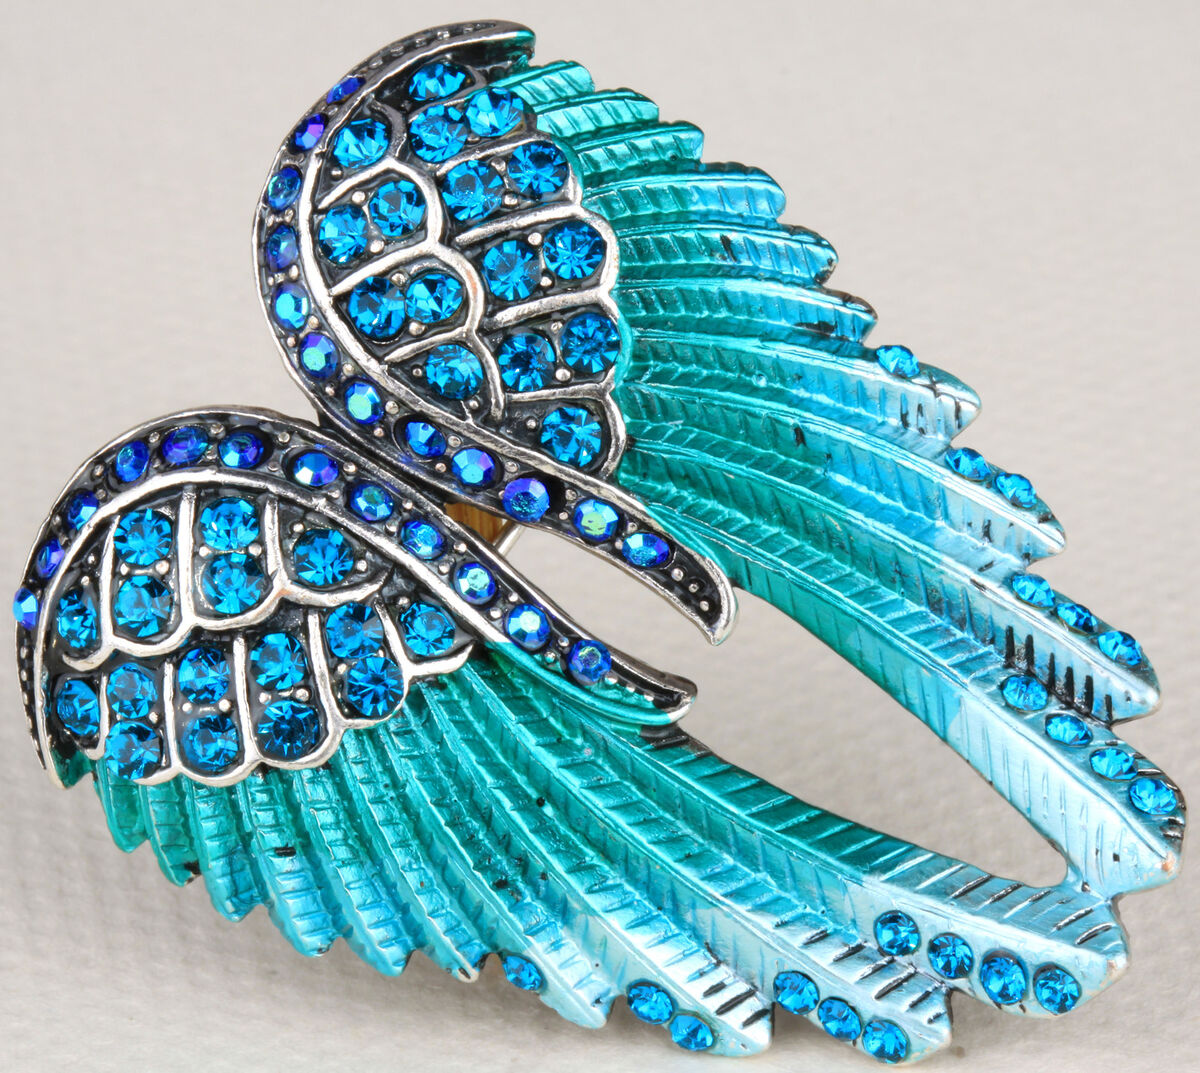 Blue Crystal Angel Wing Pin Brooch Pendant BD03 Matching Ring Earring